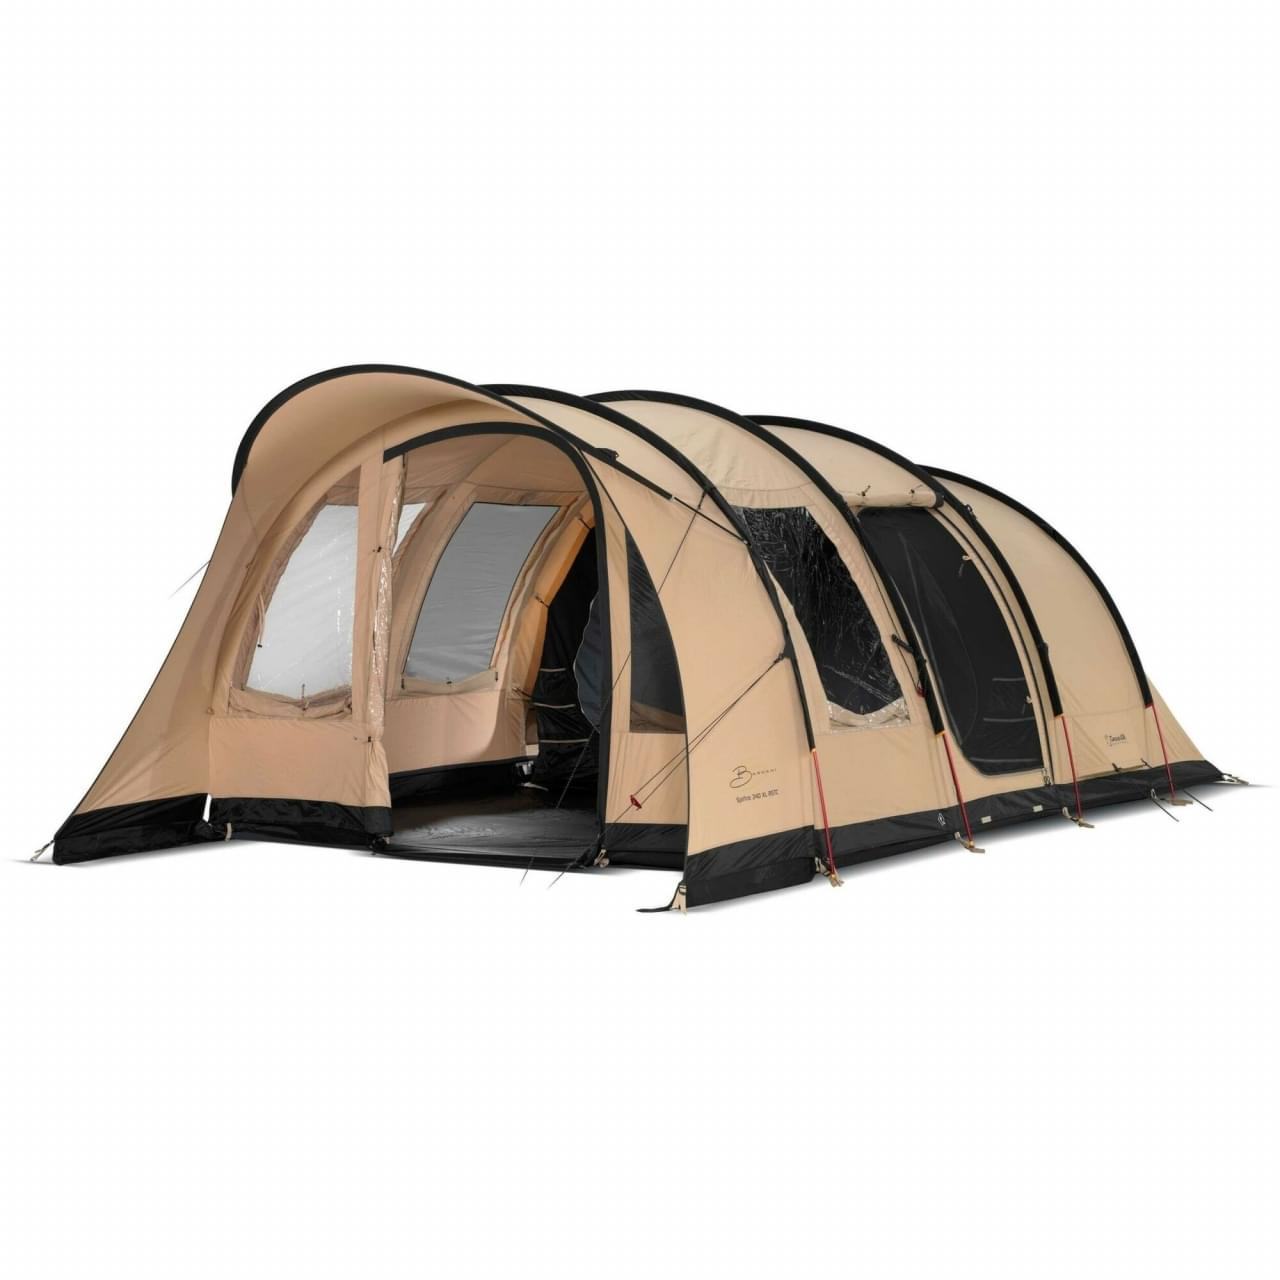 Bardani Spitfire 340 XL RSTC - 5 Persoons Tent Beige